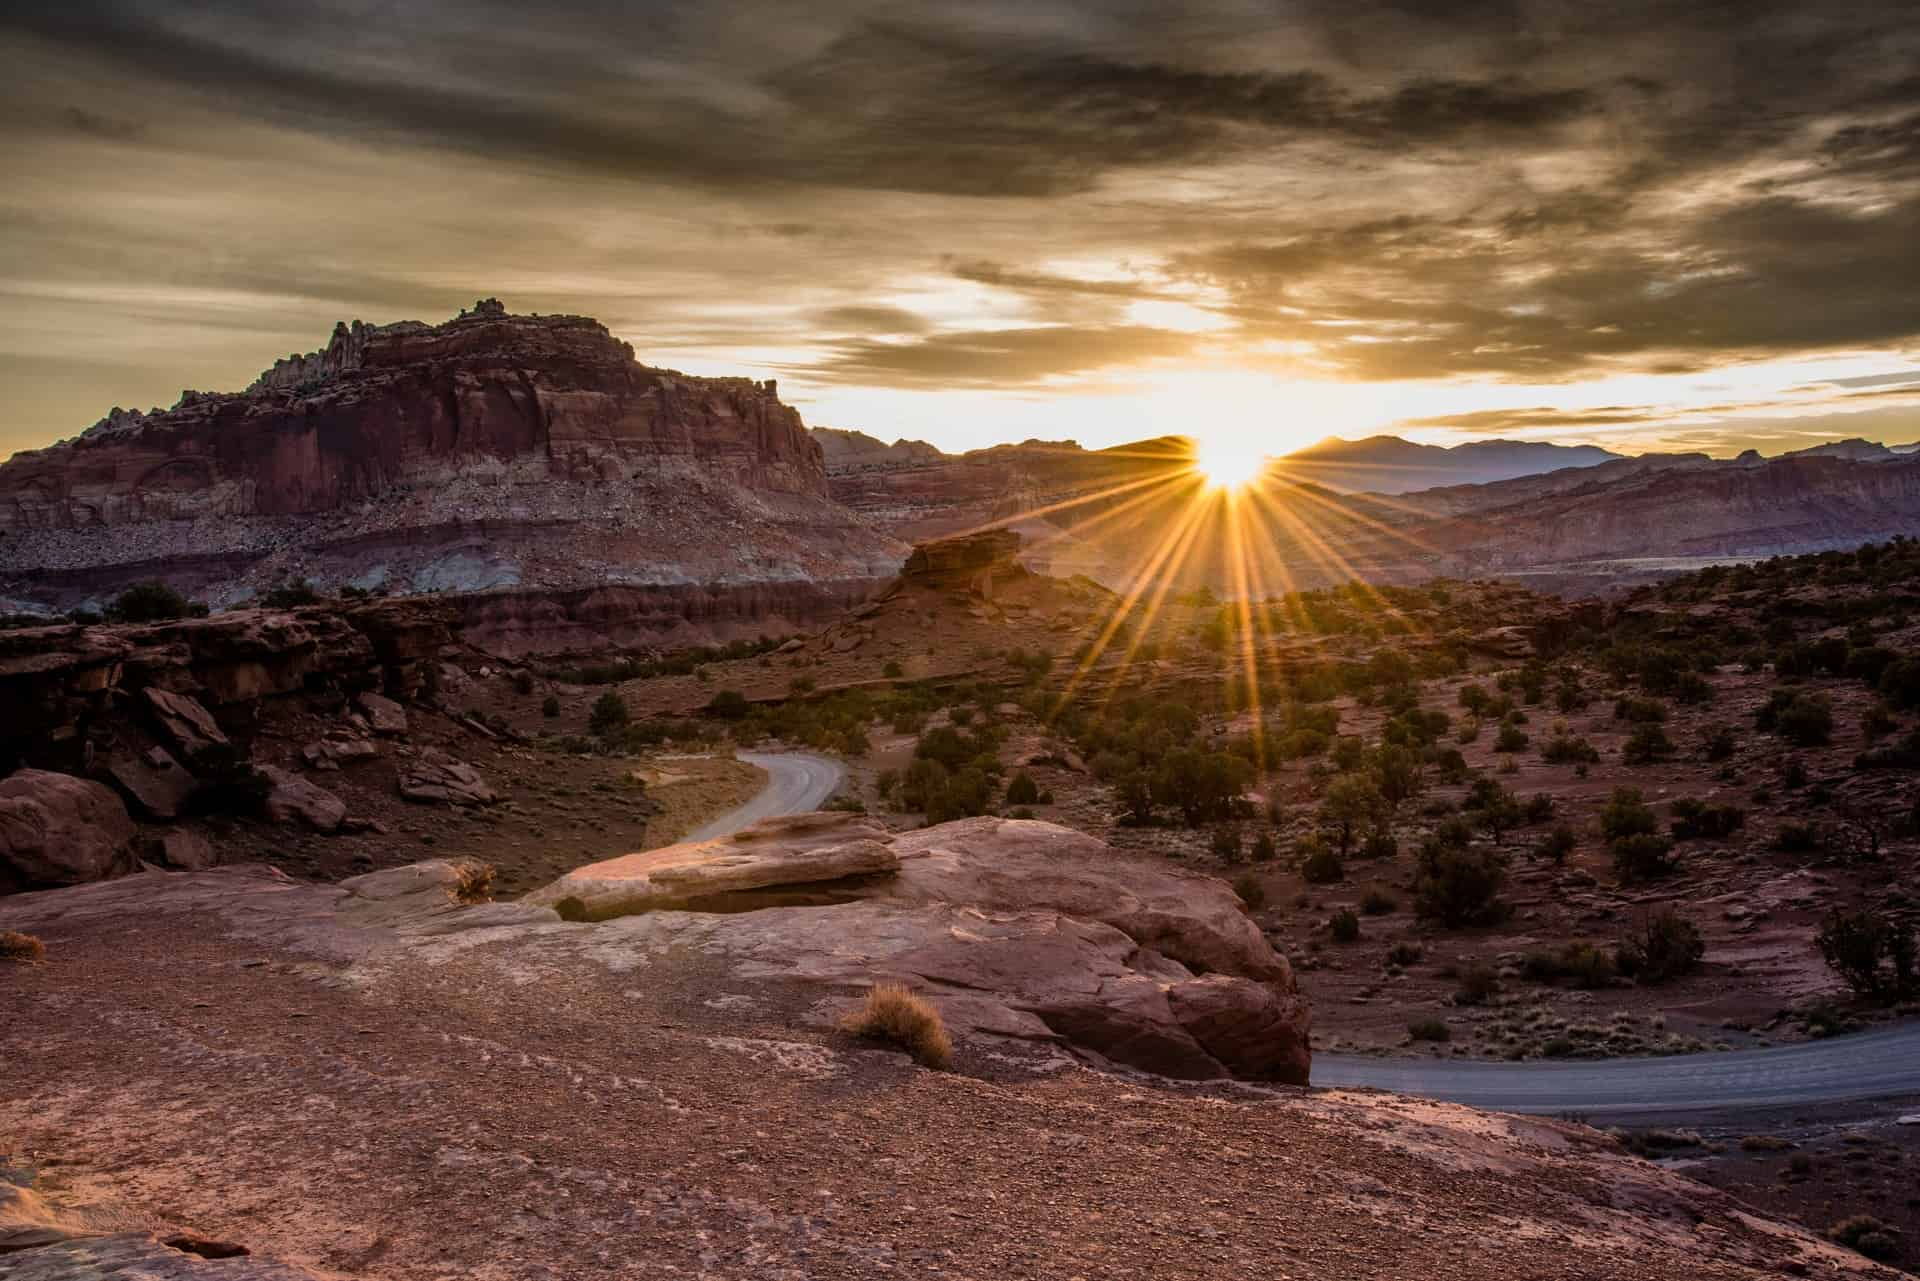 Sunrise Photography: Tips to Get Beautiful Sunrise Photos - sunrise at Capitol Reef National Park, Utah at Panorama Point